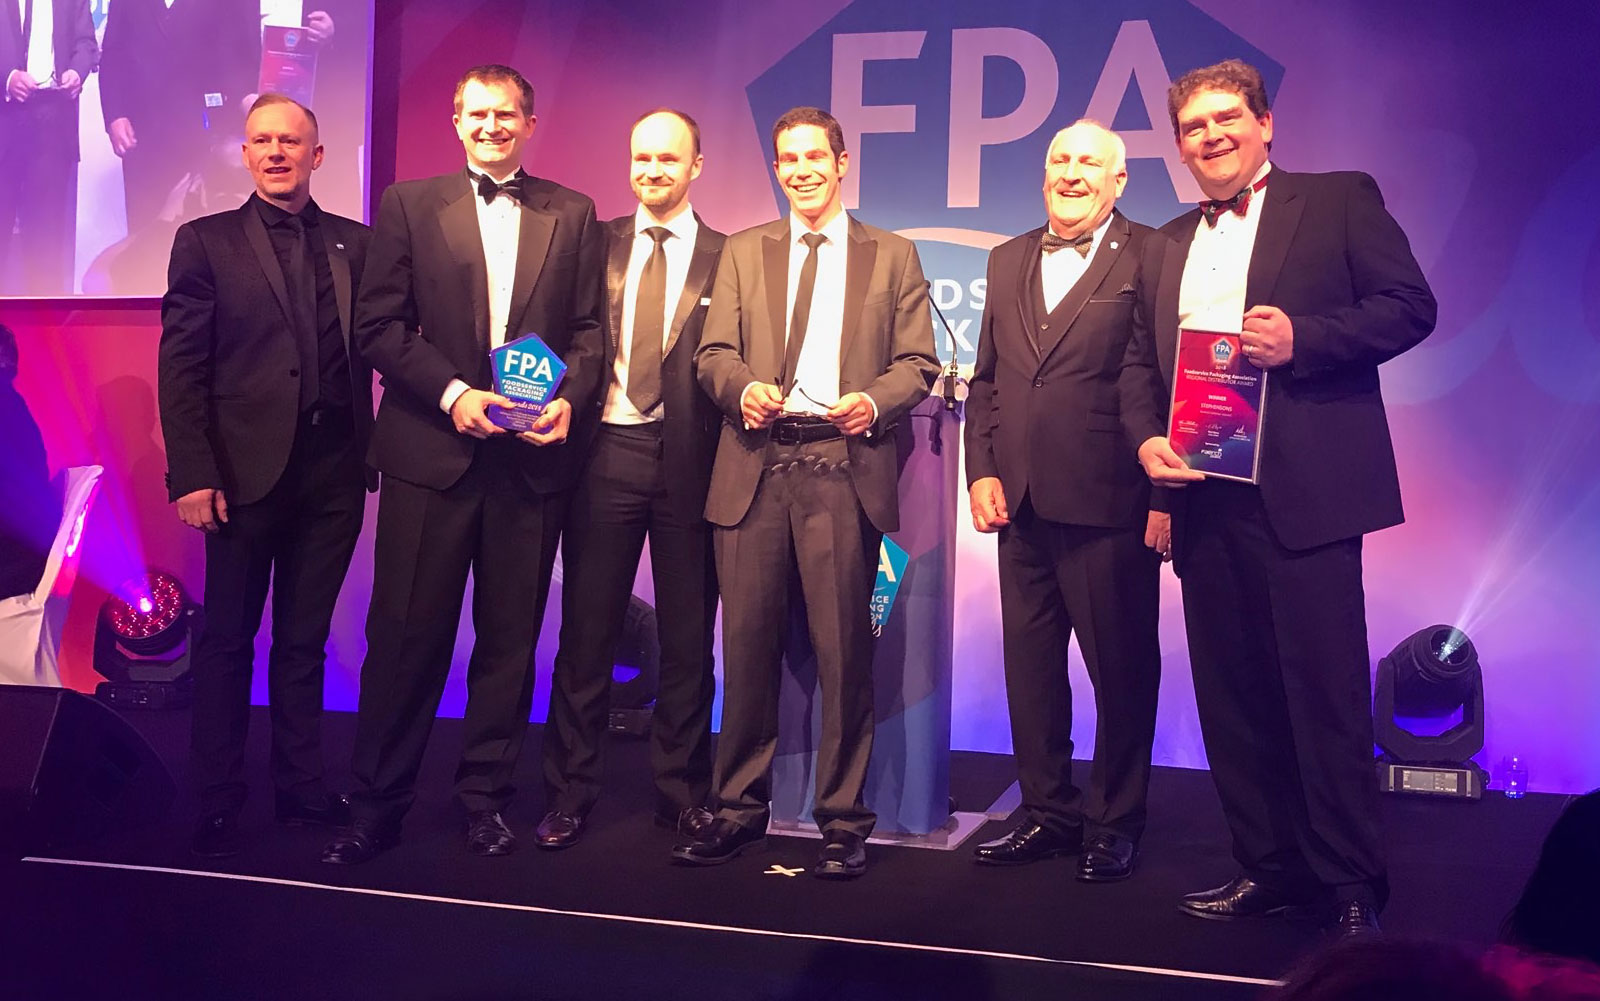 Henry and Julian were proud to accept the FPA Award for Regional Distributor of the Year 2018